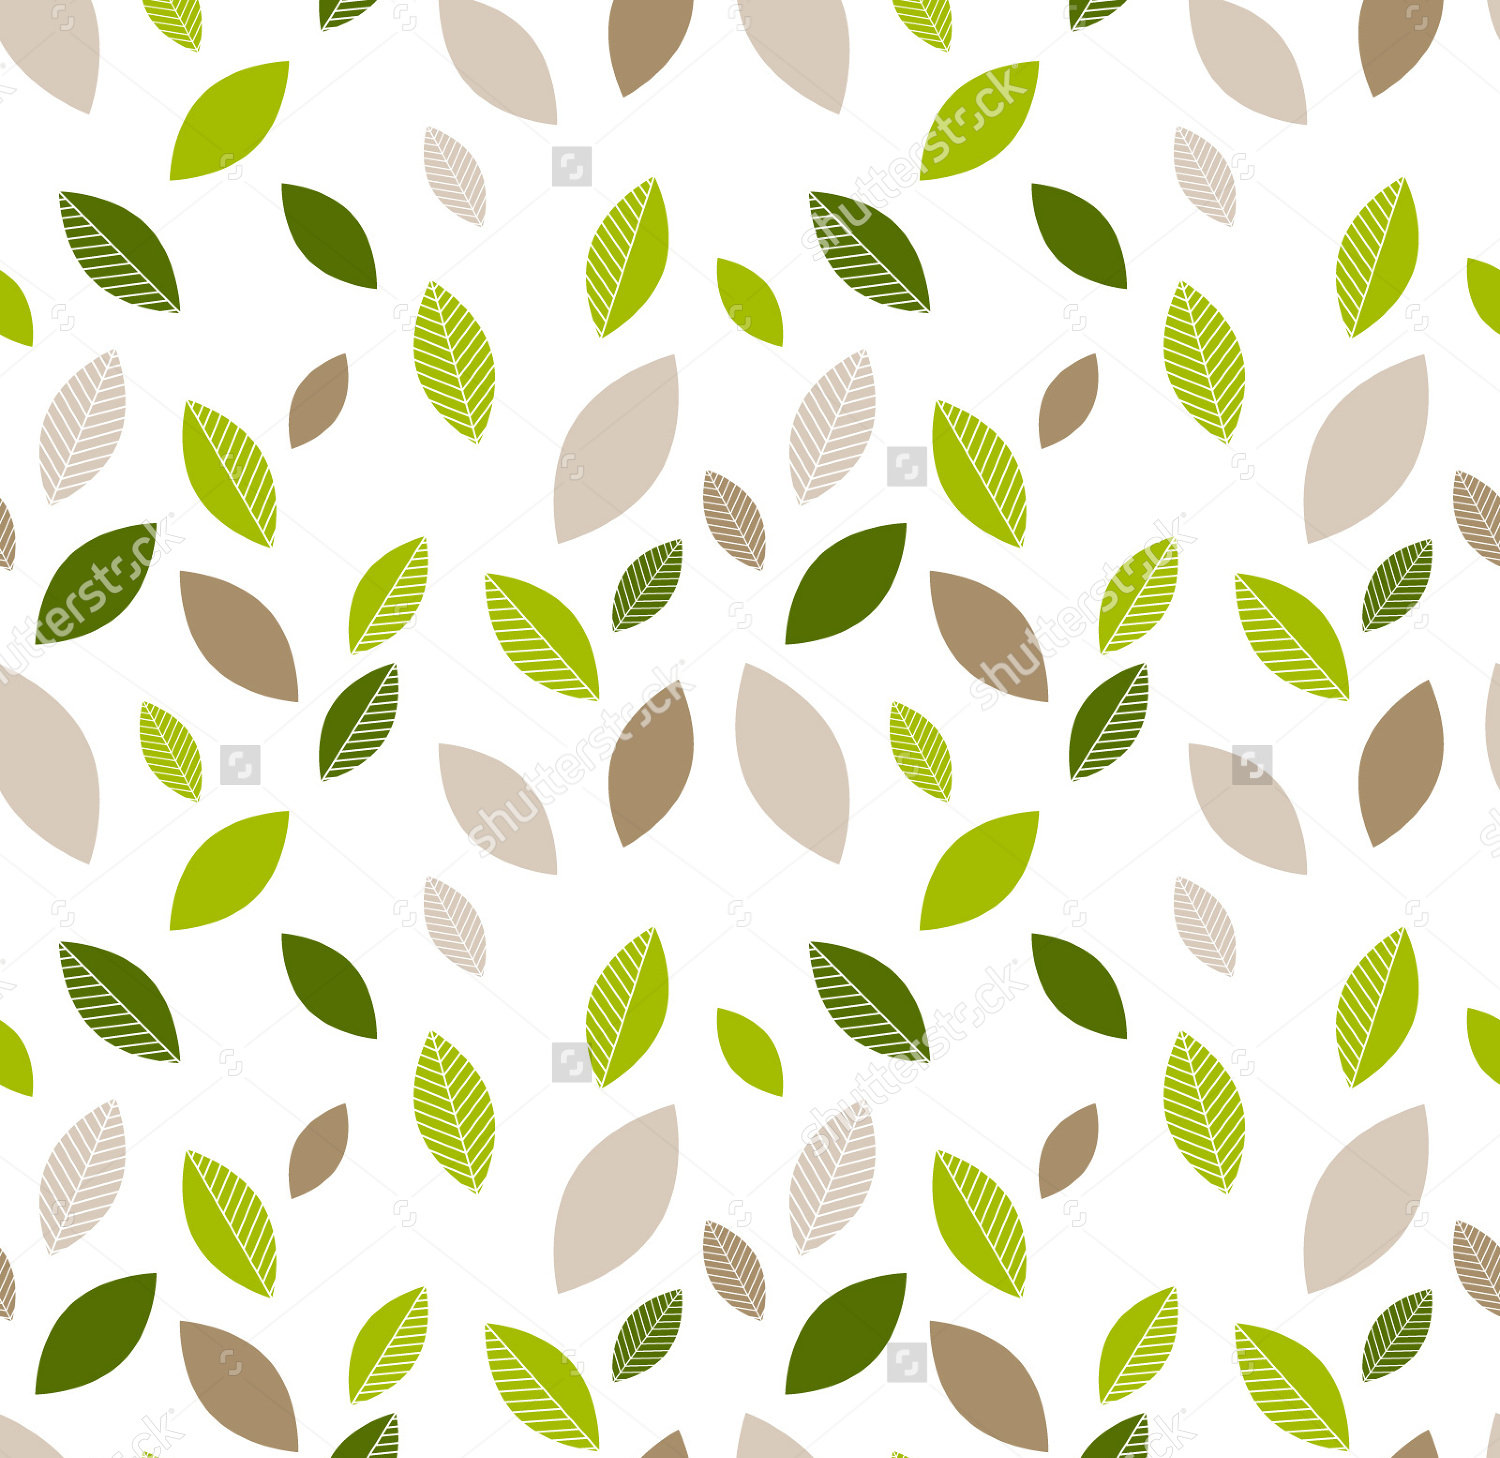 Decorative Seamless Leaf Pattern